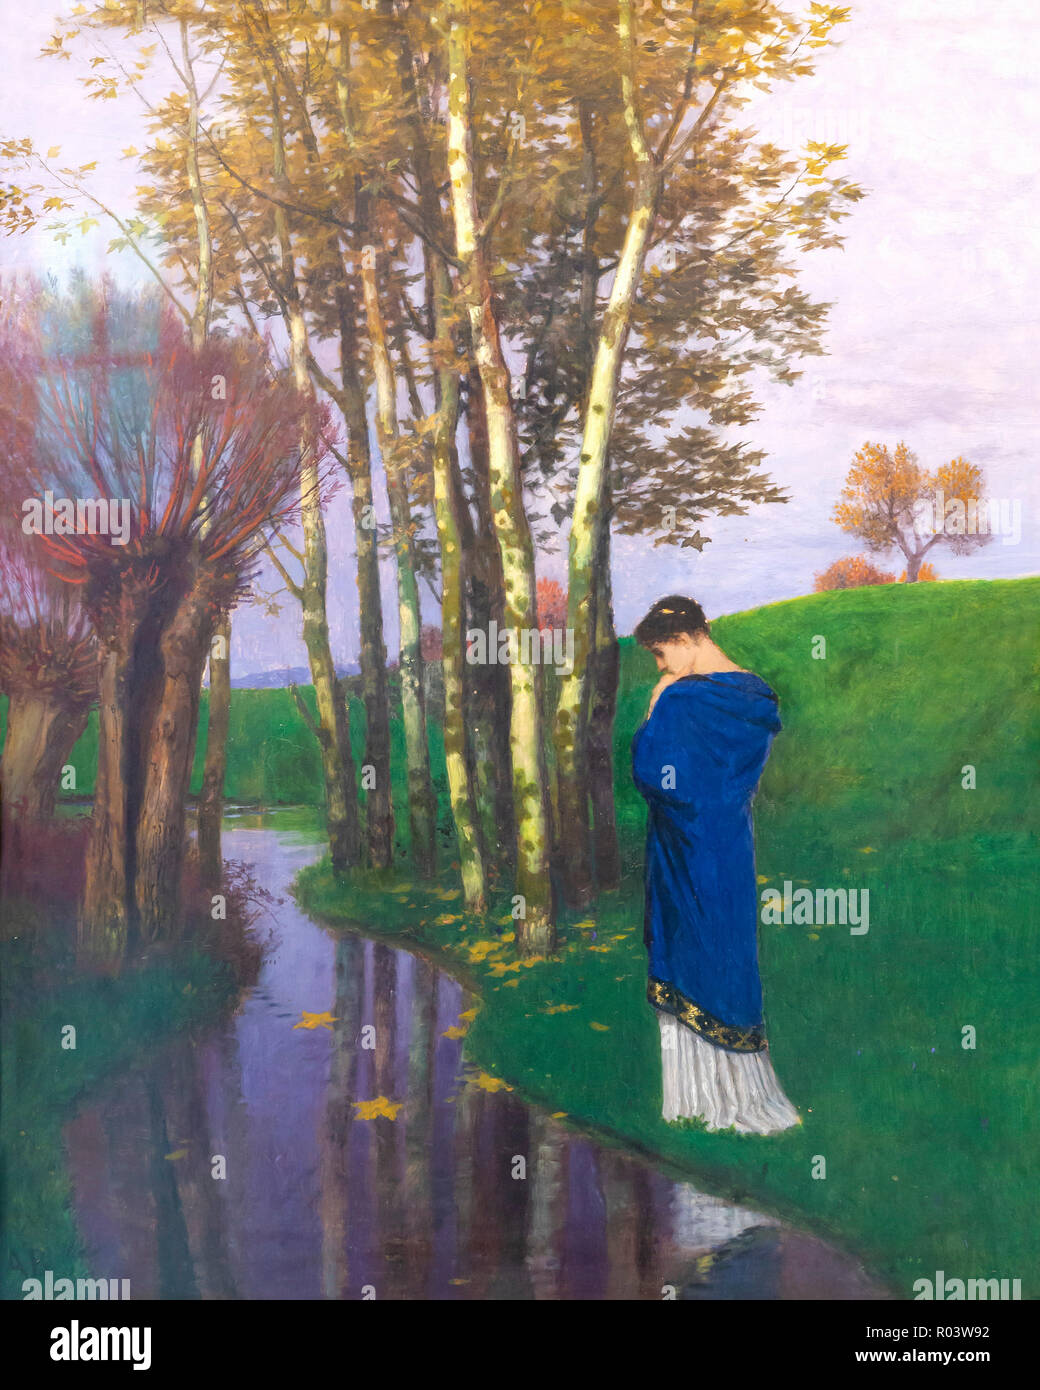 Pensées d'automne, Arnold Bocklin, 1886, Kunsthaus Zurich, Zurich, Switzerland, Europe Photo Stock